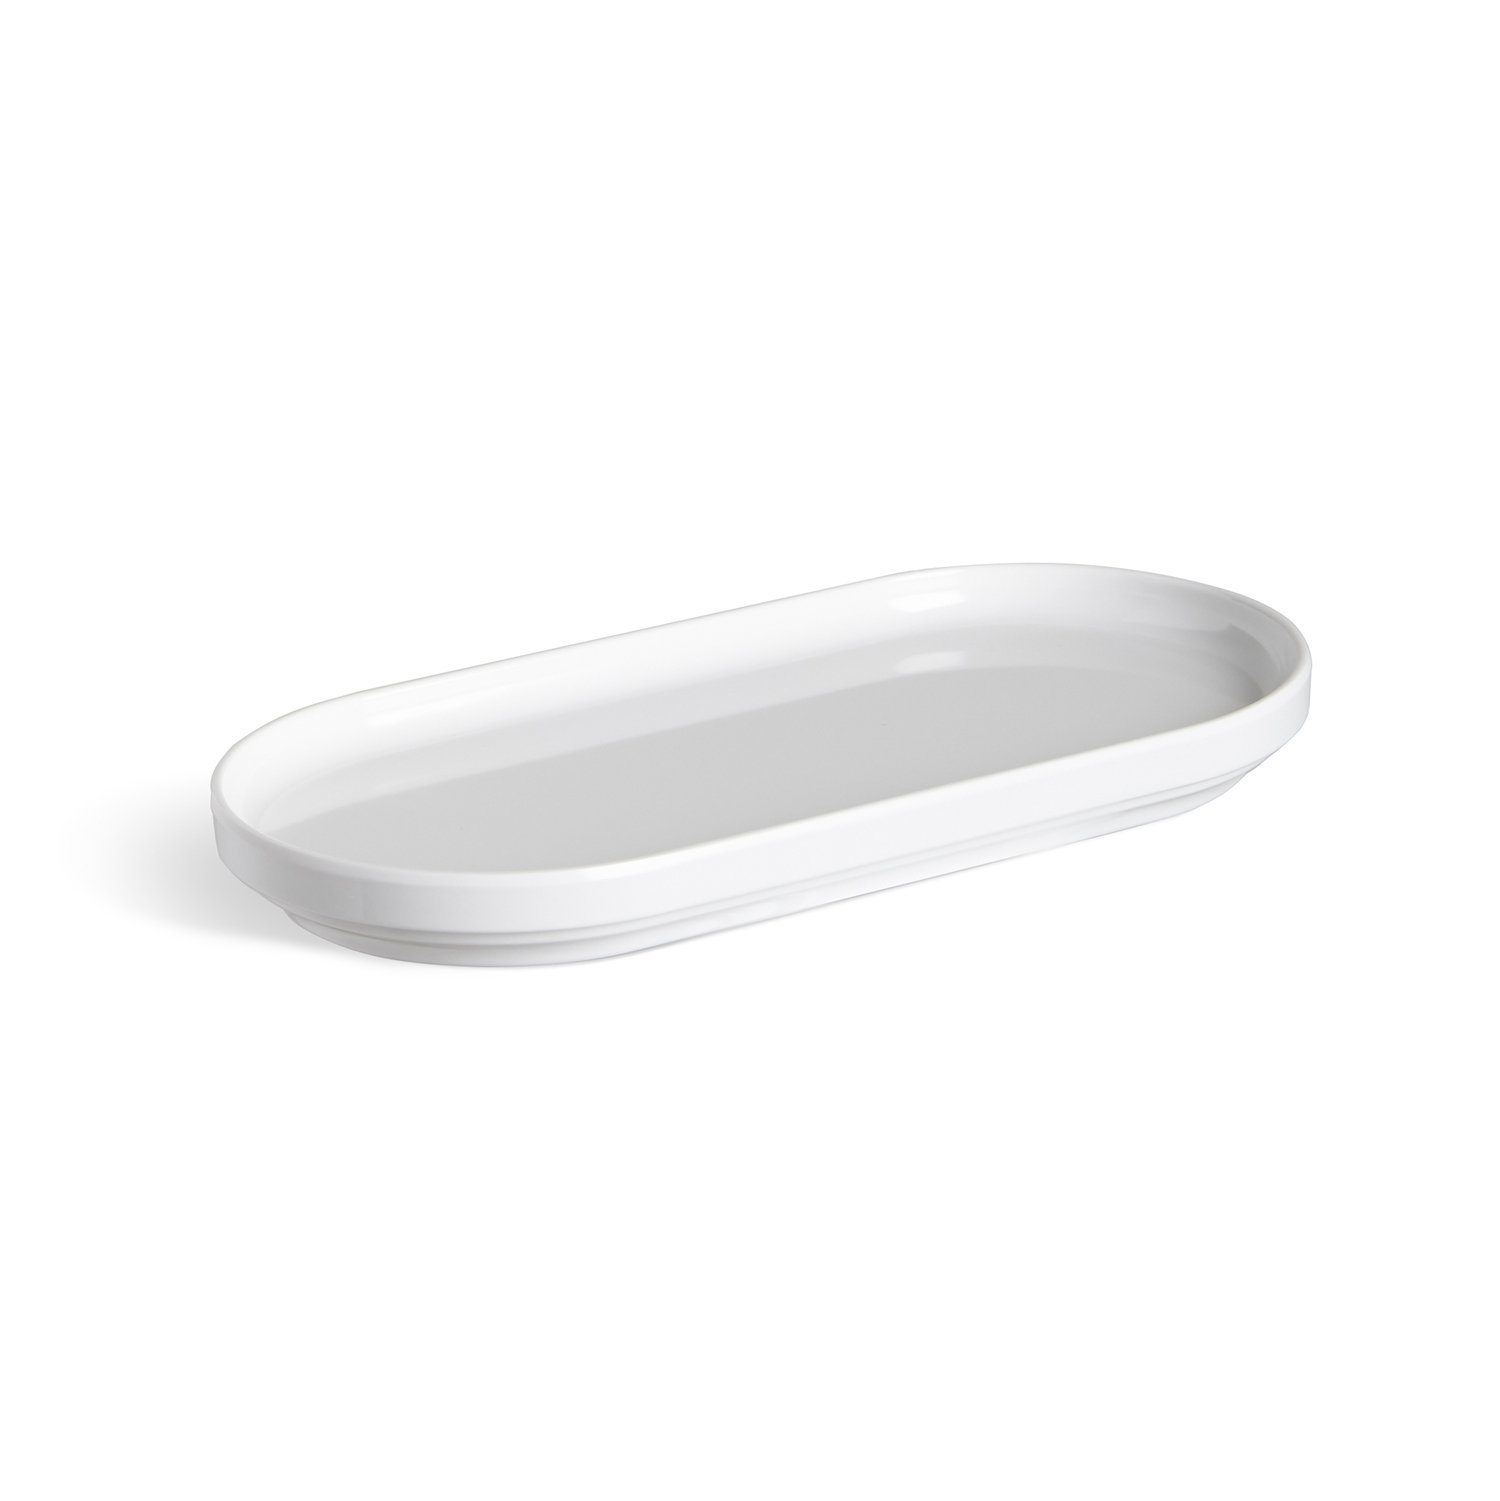 Umbra Step Amenity Tray, White